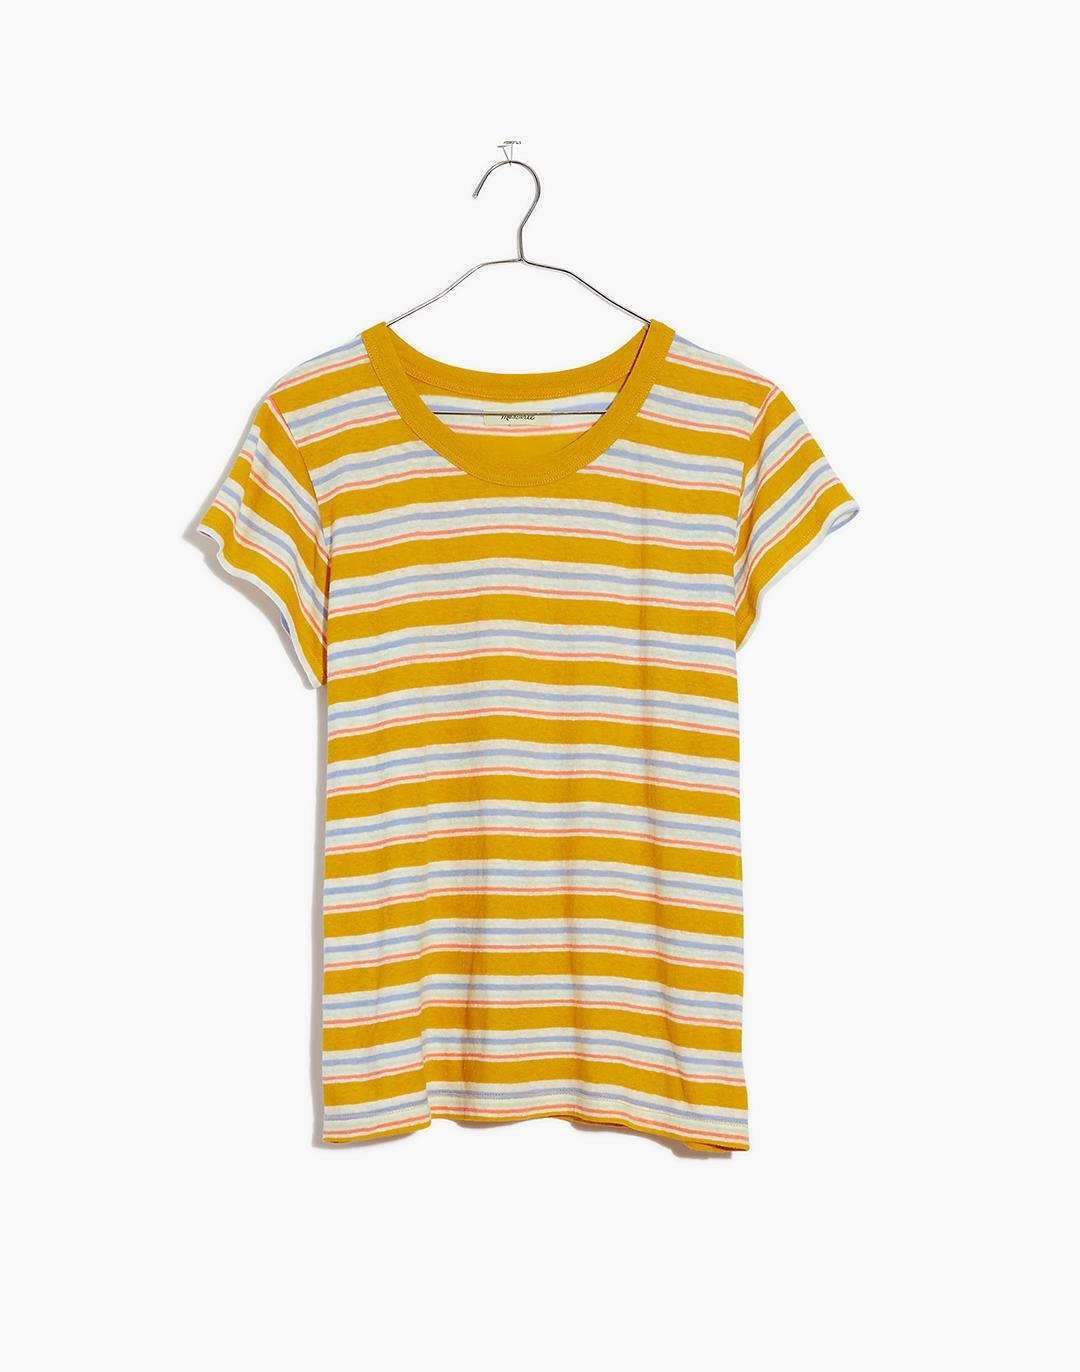 The Perfect Vintage Tee in Upson Stripe